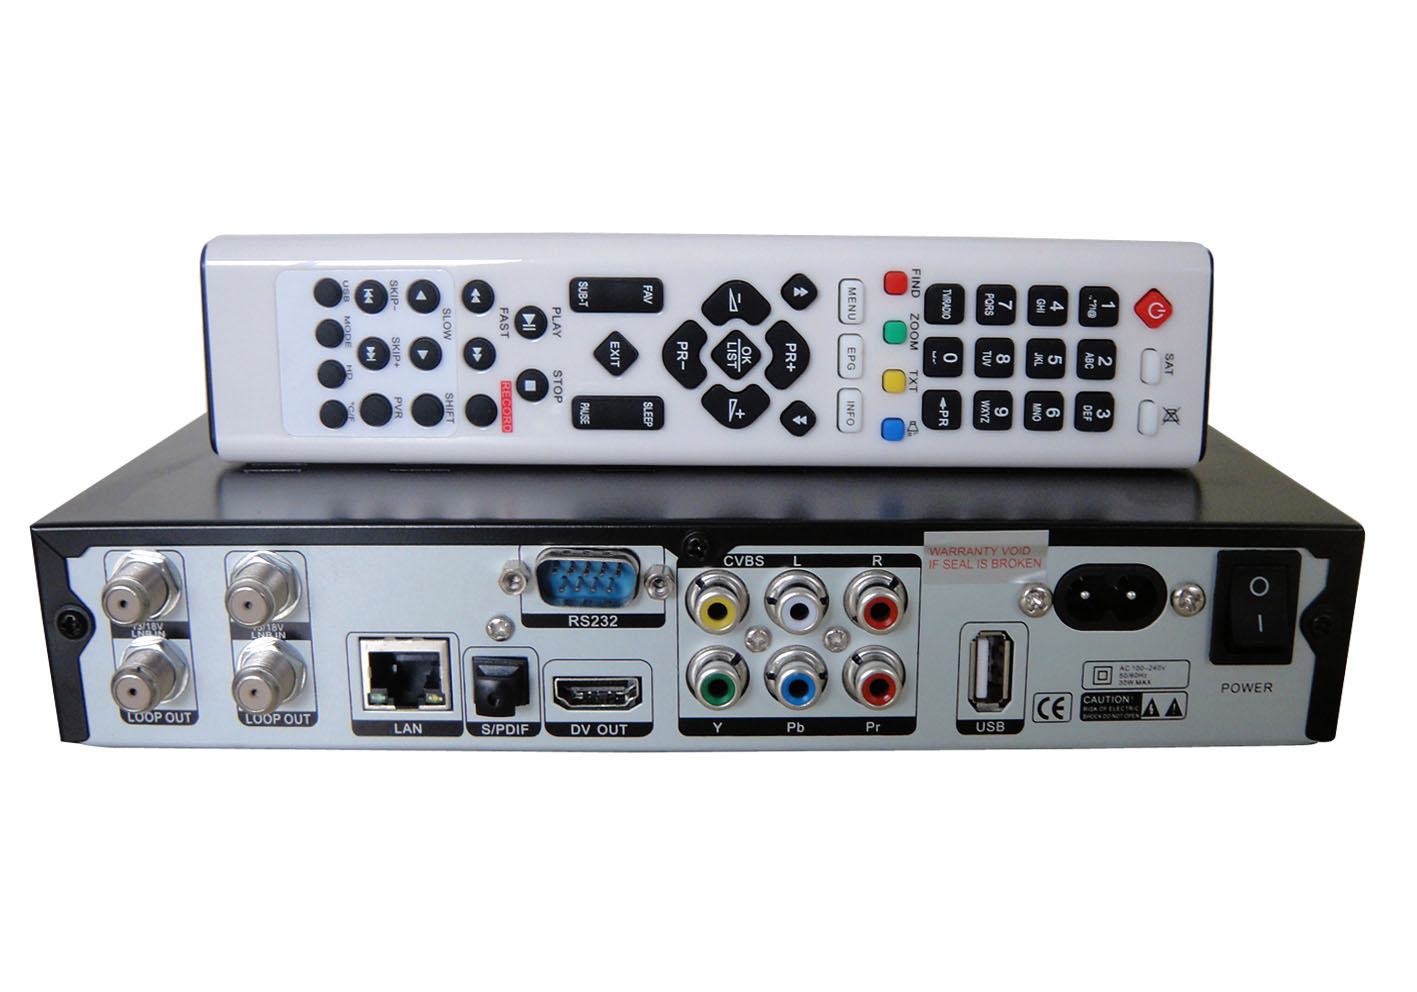 displaying signal finder hdmi digital satellite receiver south America